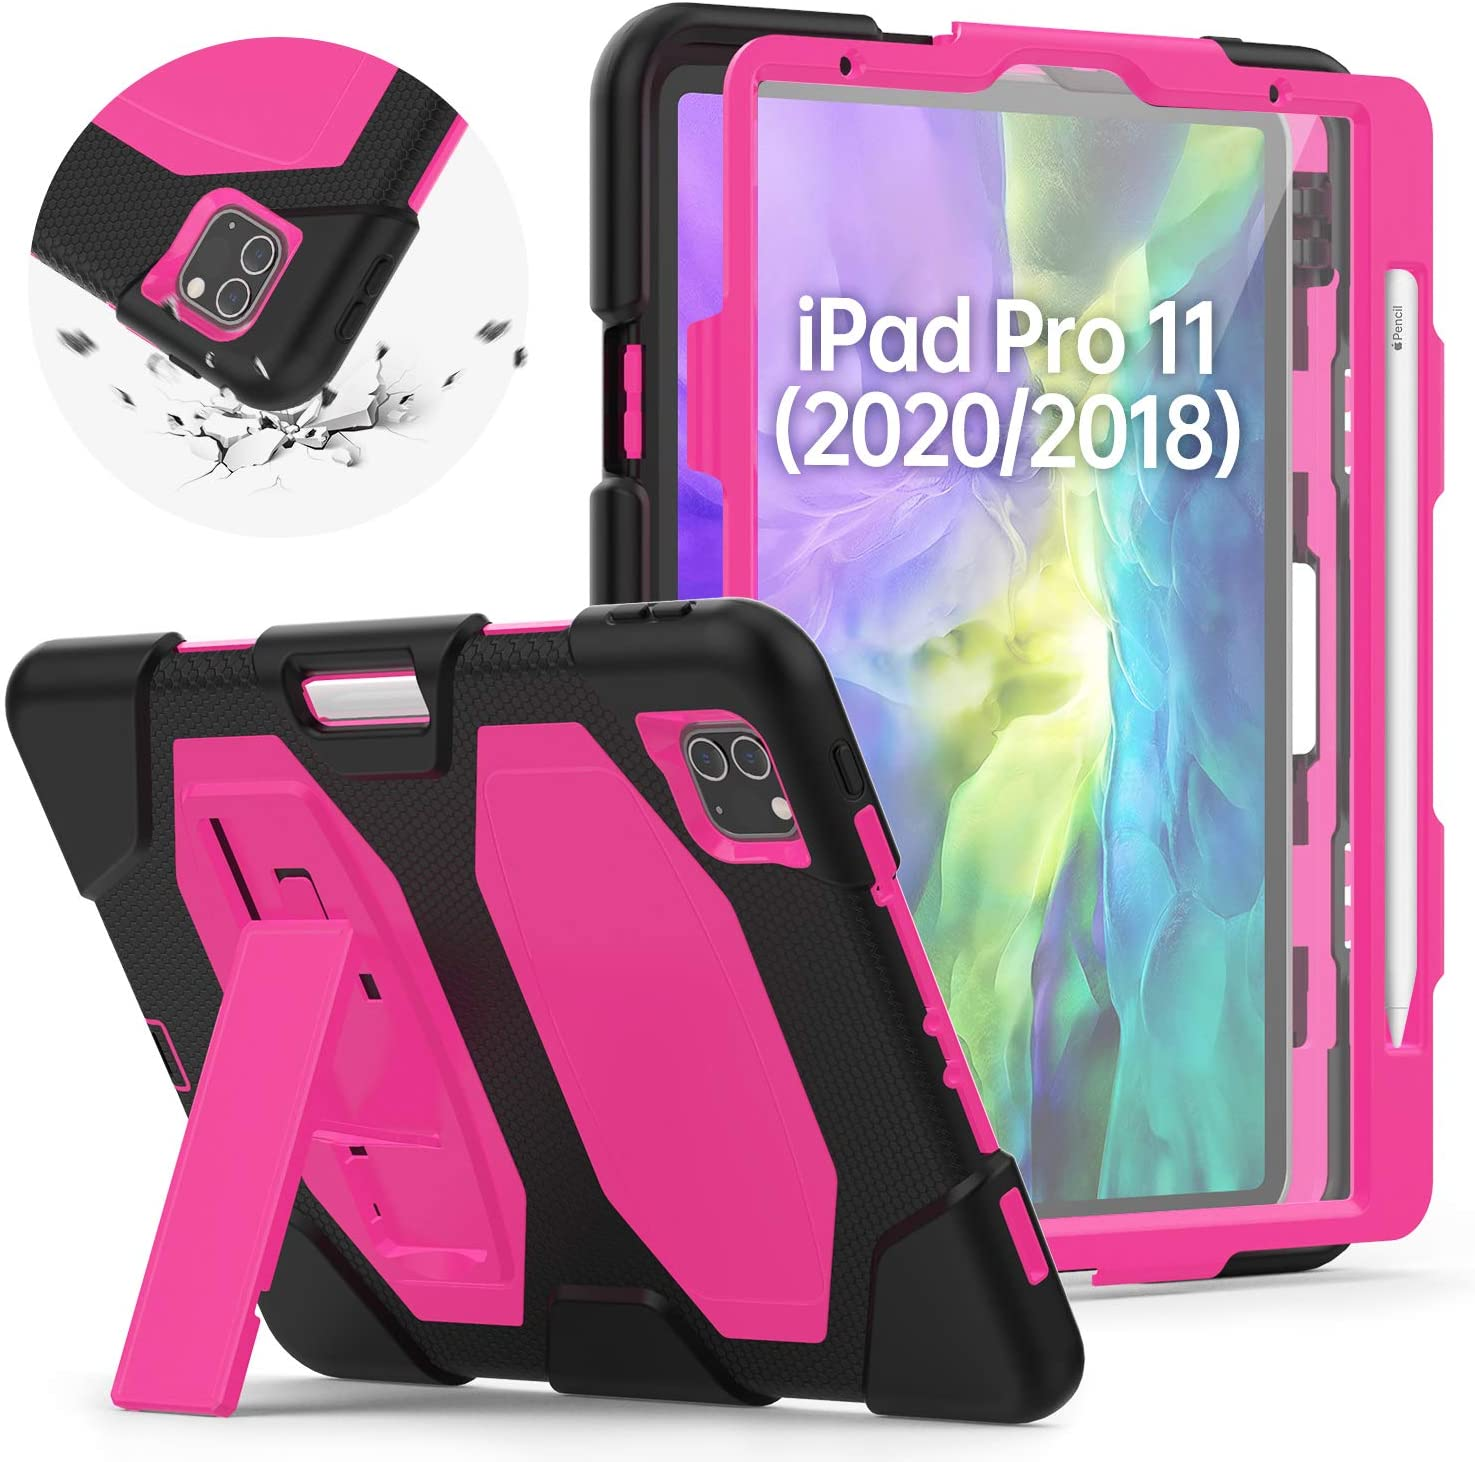 New iPad Pro 11 Case 2nd Generation 2020&2018 Released with Screen Protector, HXCASEAC Full Body Protective Rugged Shockproof Skid Proof + Robust Stand + Support 2nd Gen iPad Pencil Charging,Pink